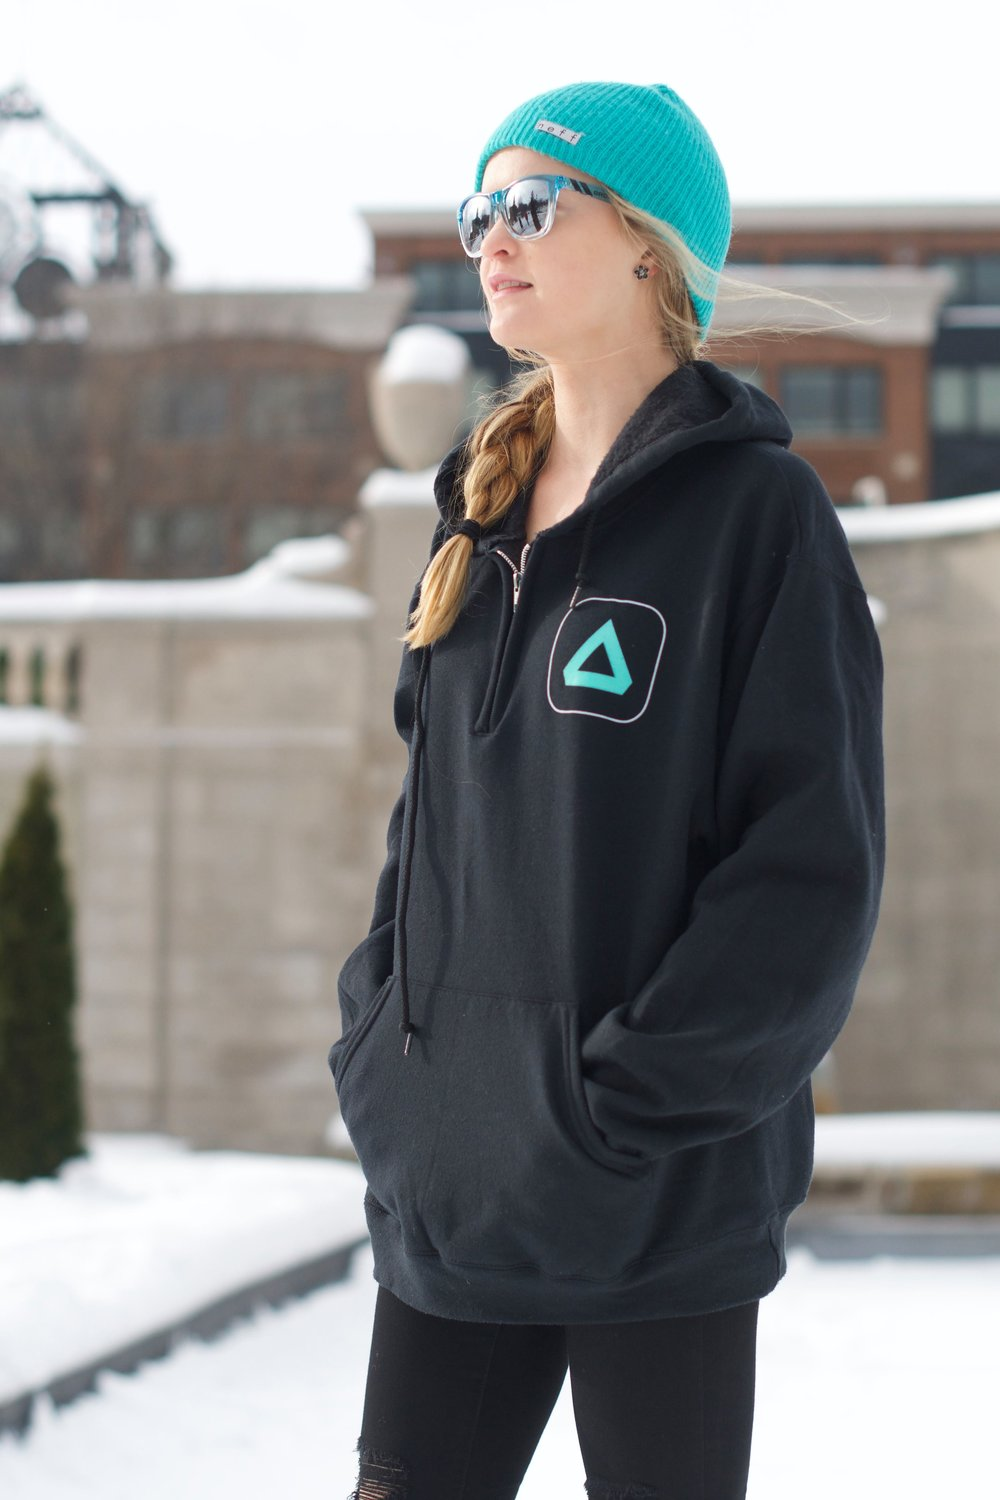 Quarter Zip  - $35▵ Glow-in-the-dark▵ Machine-washable▵ Comfortable and stylish